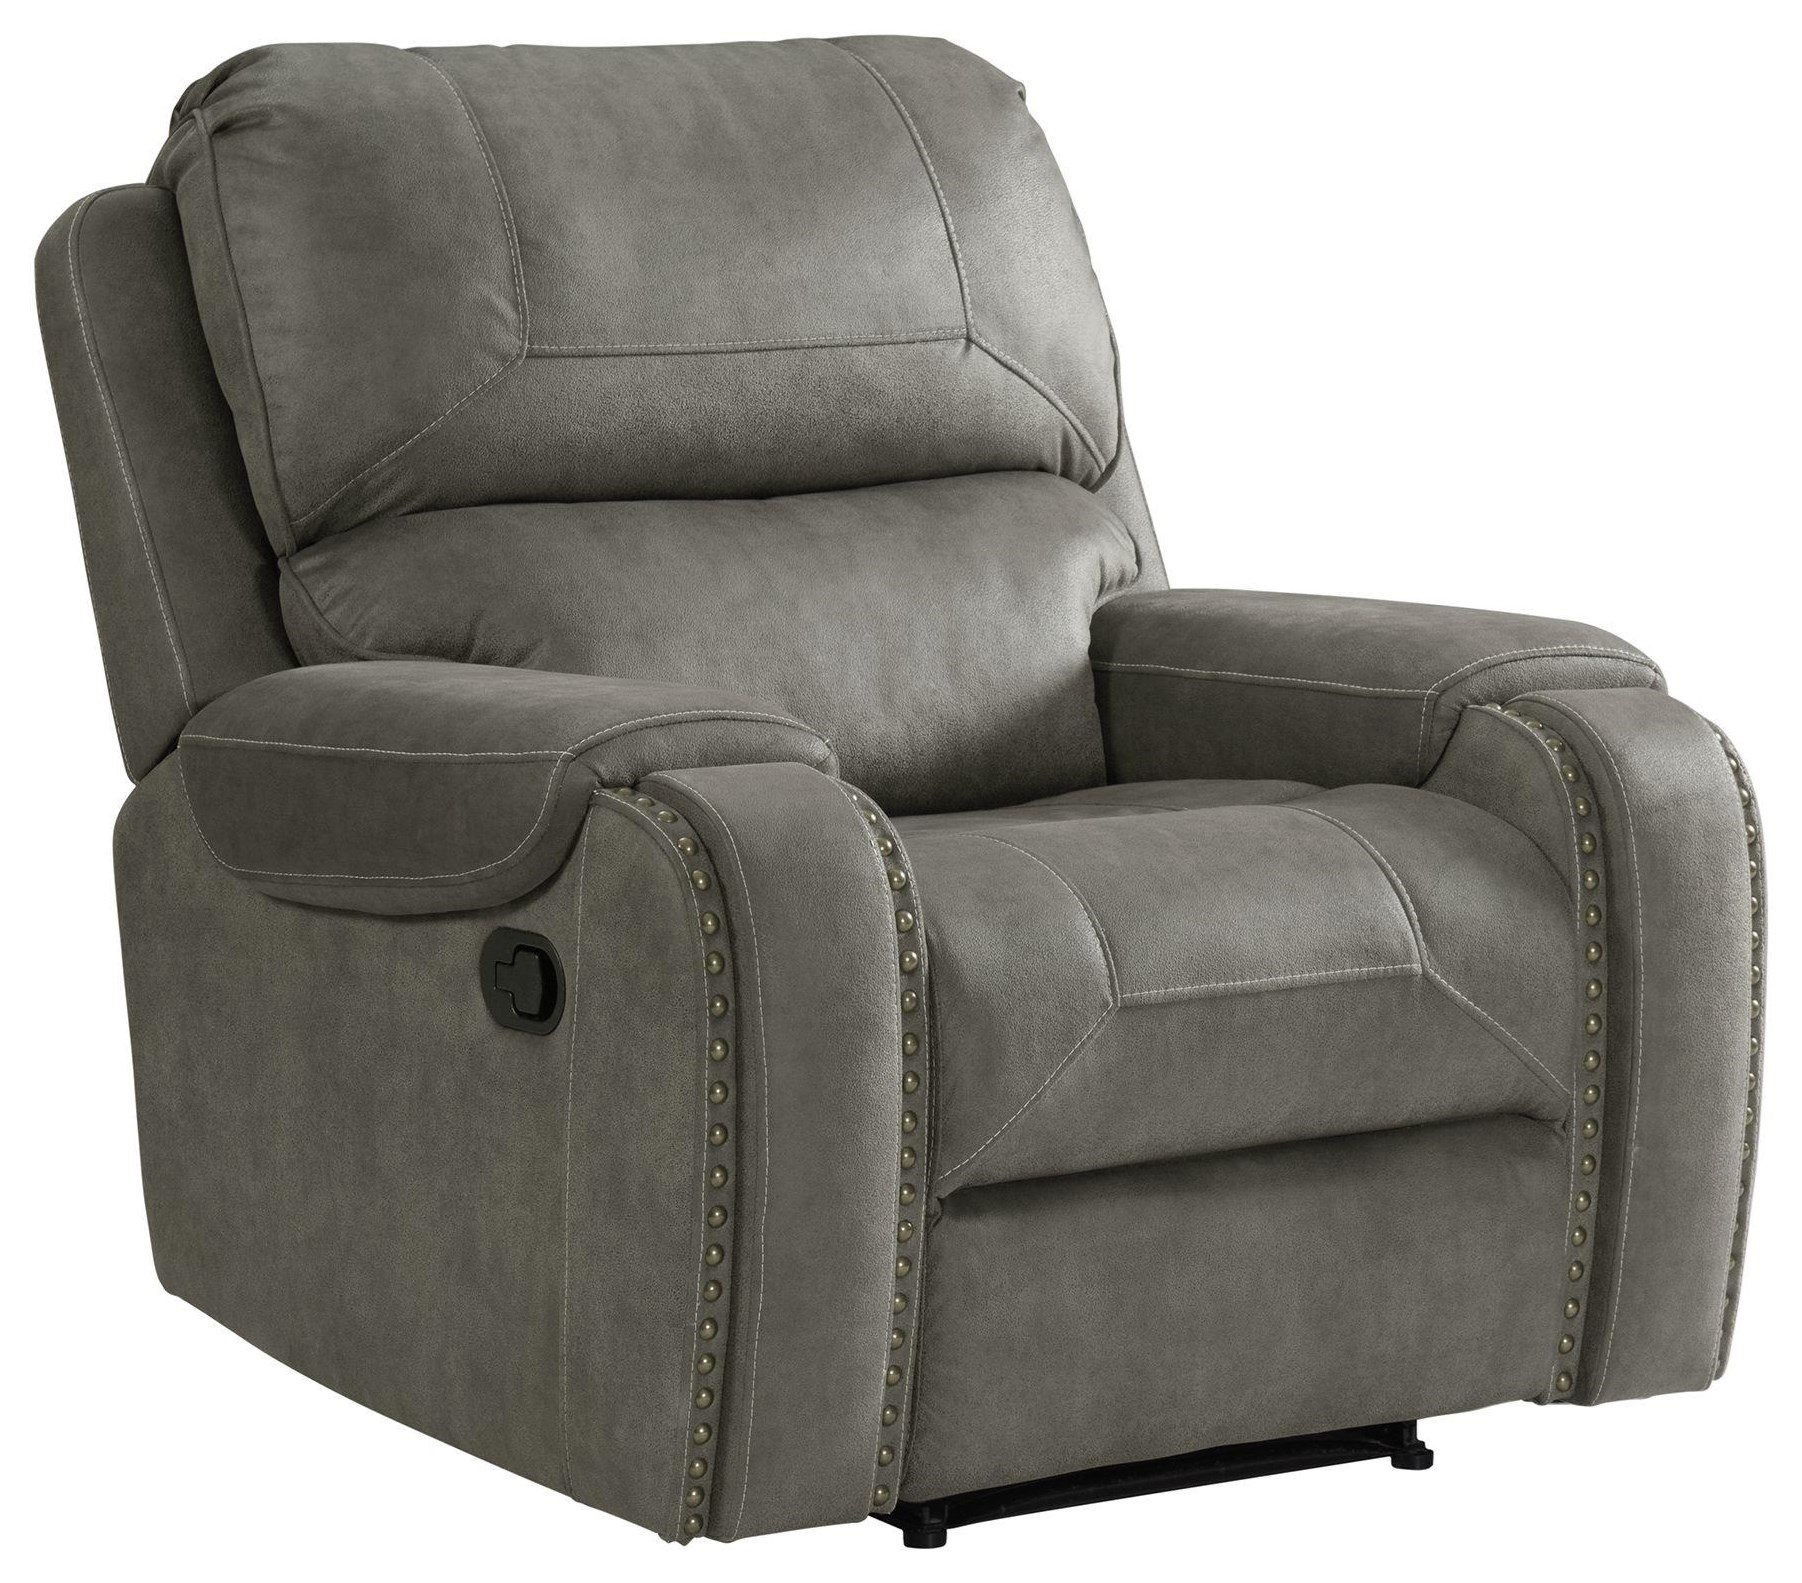 Clayton Motion Recliner by Elements International at Smart Buy Furniture